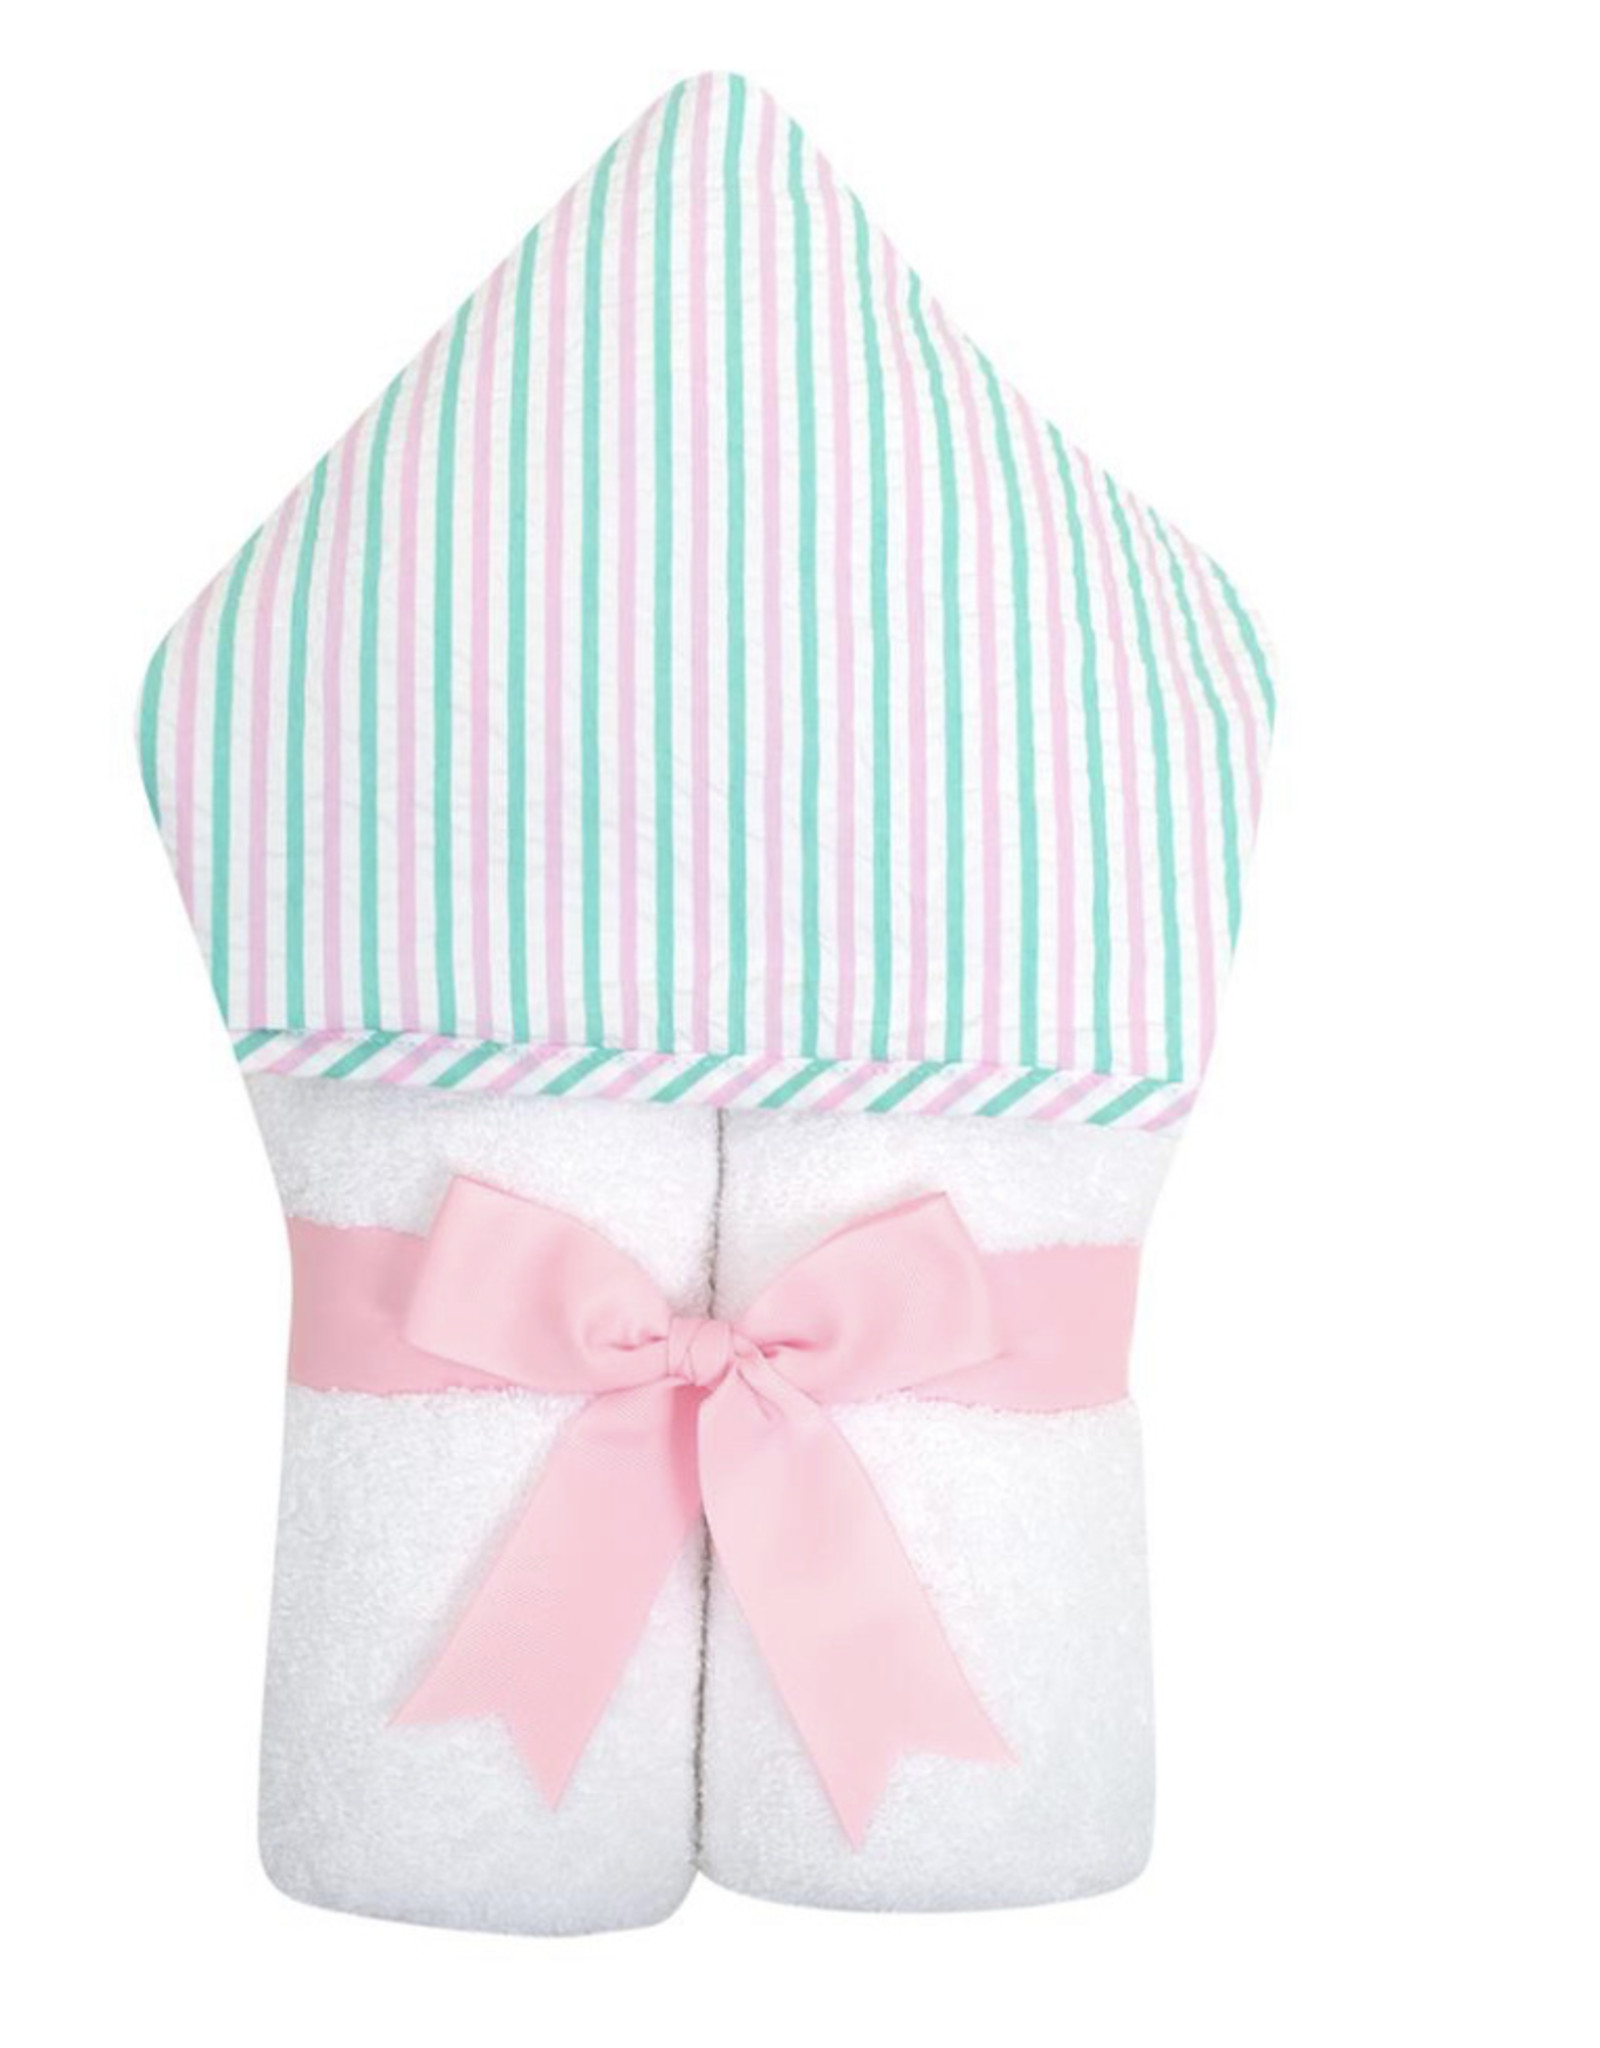 3 Marthas Fabric Every Kid Towel